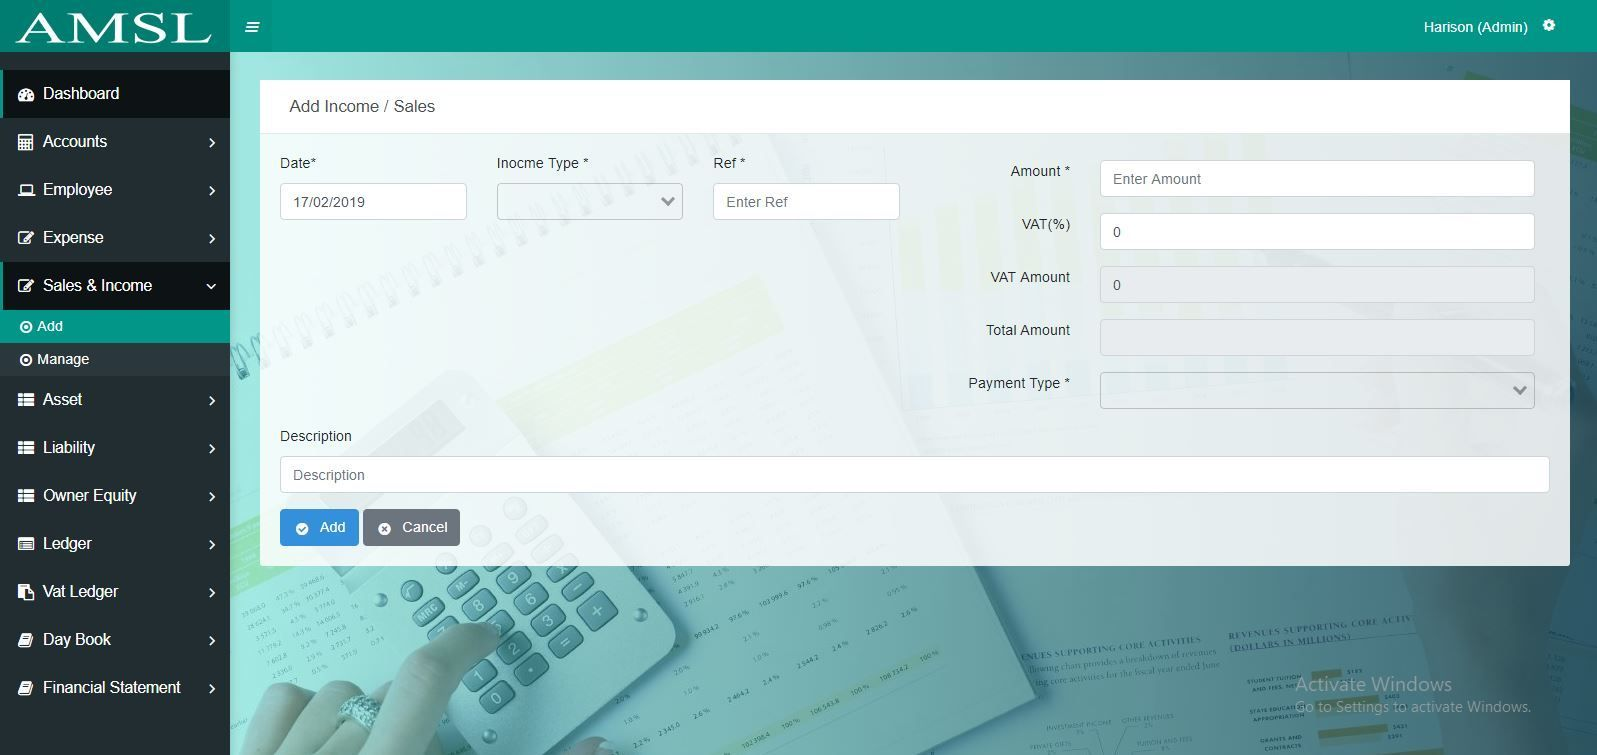 AMSL - Service Based Accounting Management System  Screenshot 5